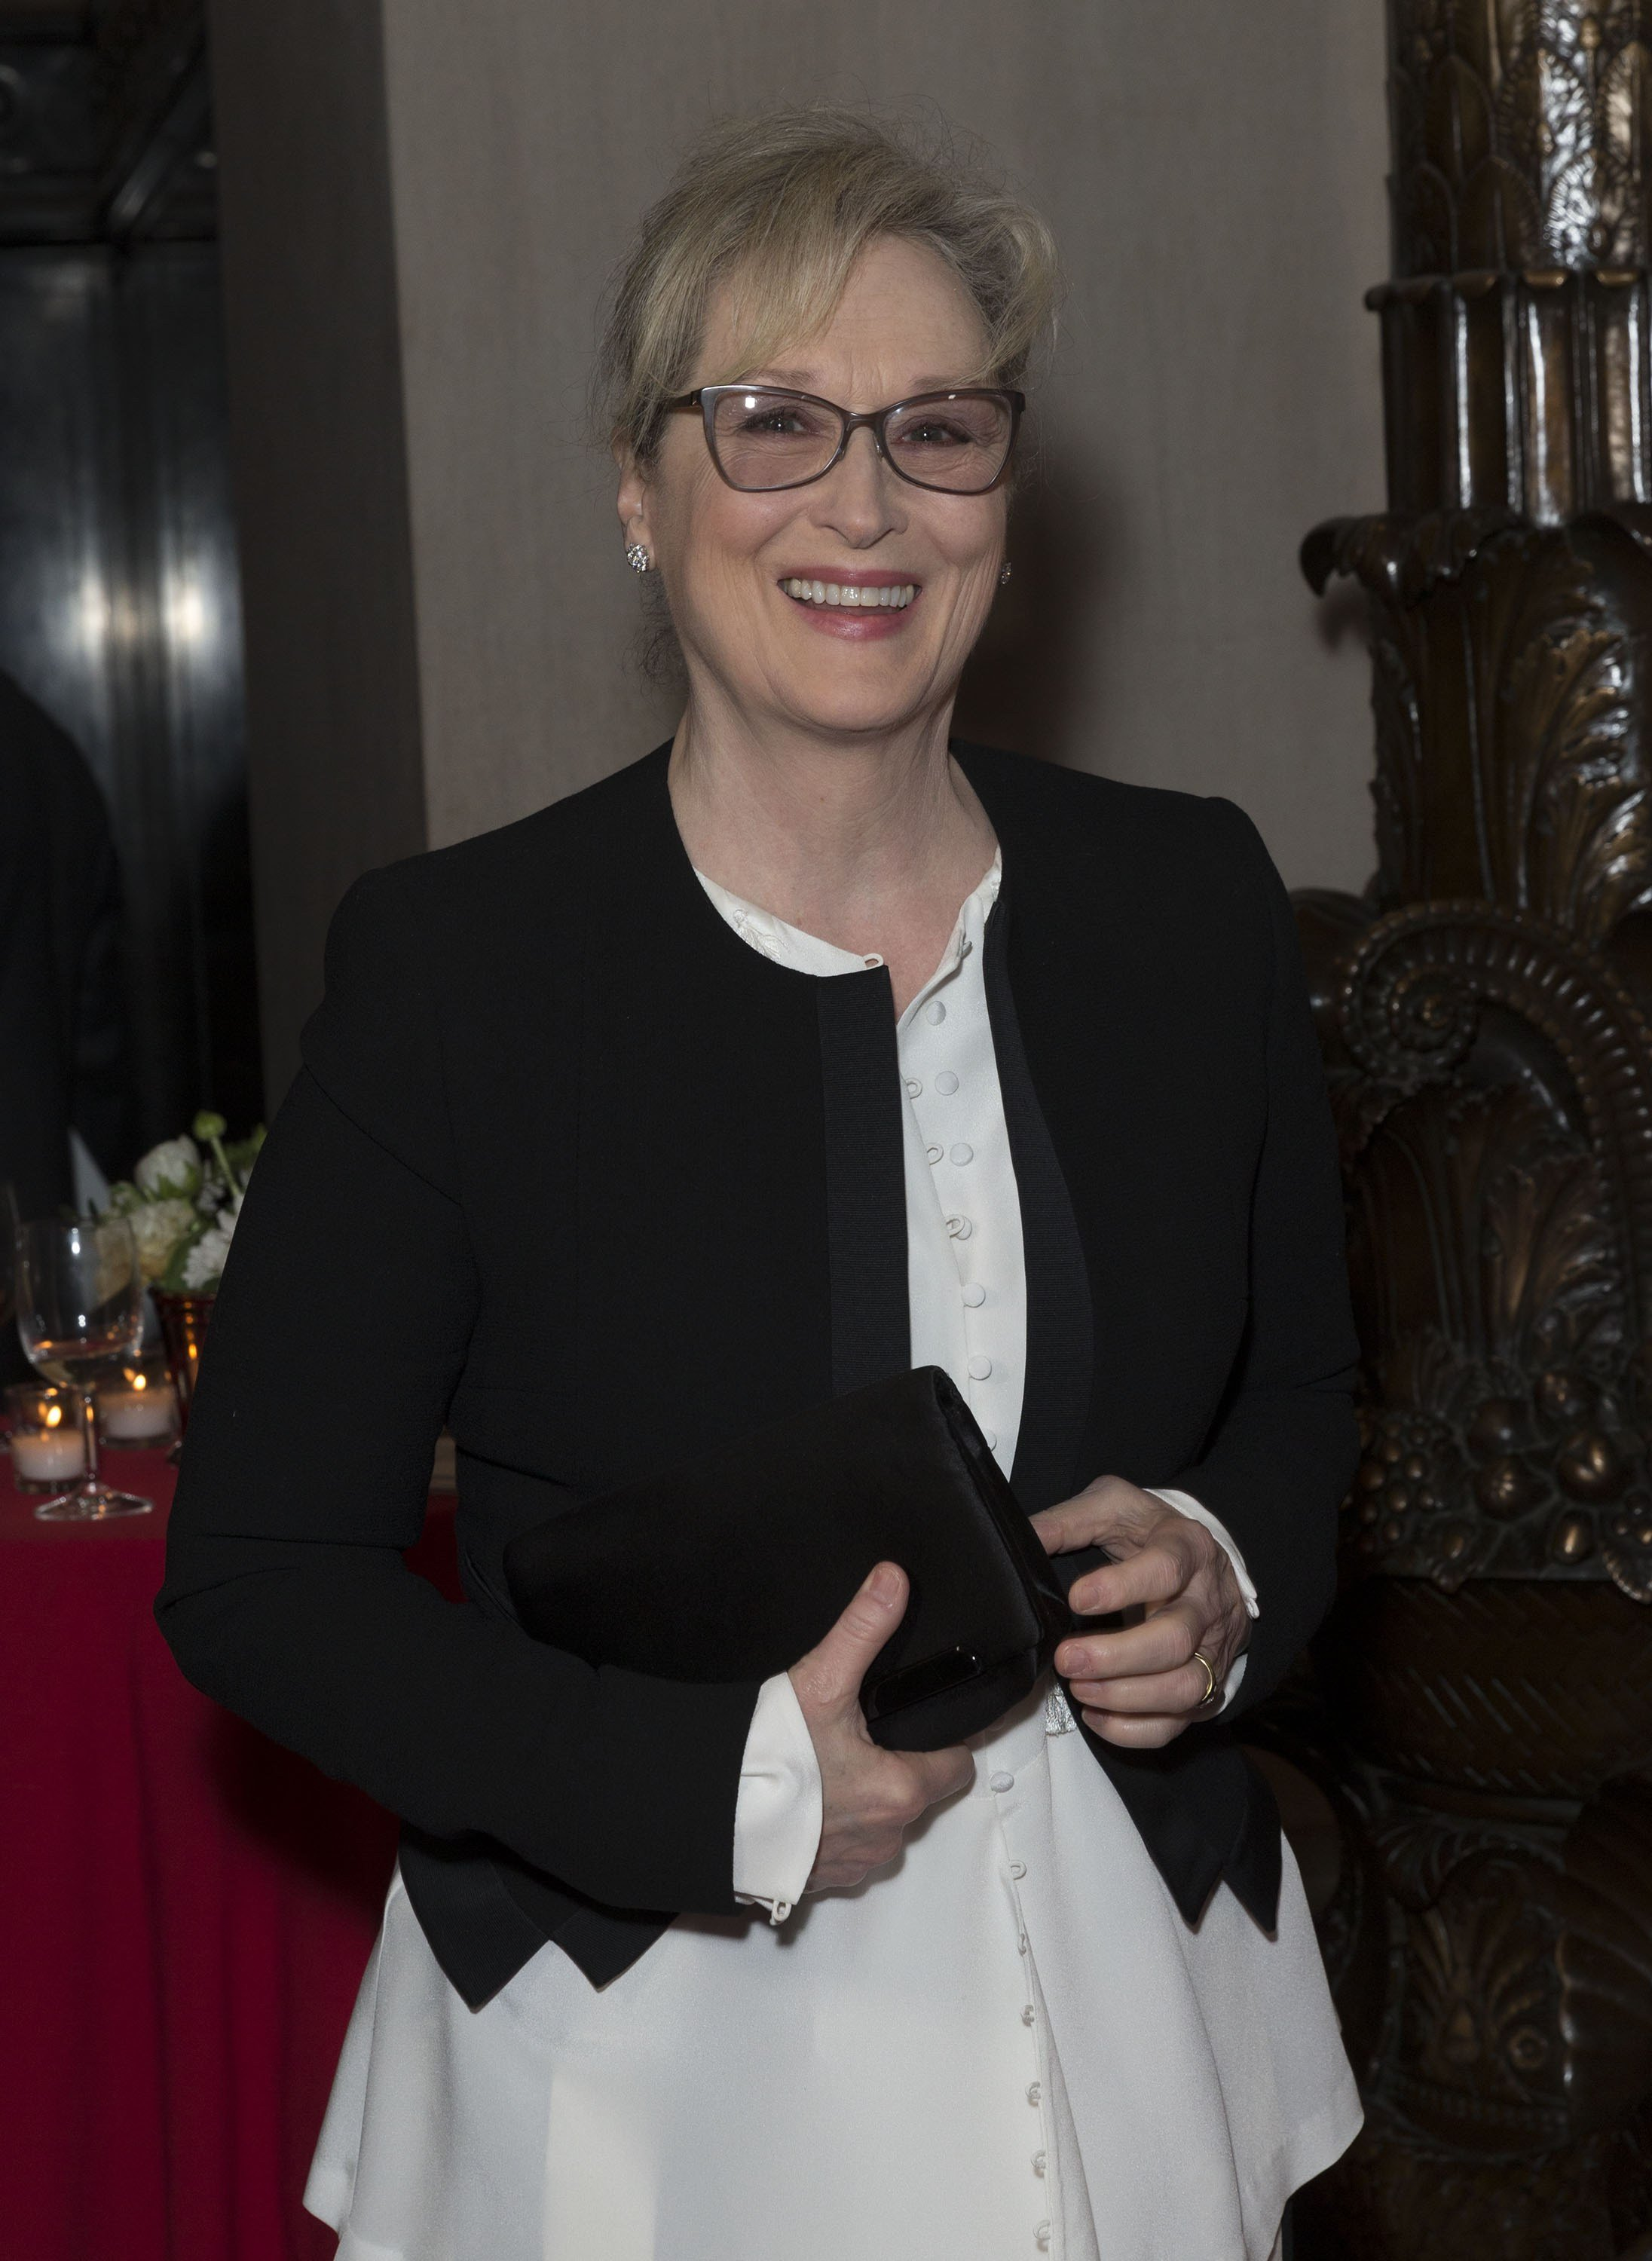 Meryl Streep at arrivals for PEN America's 2017 Literary Gala, The American Museum of Natural History, New York, NY April 25, 2017., Image: 330224970, License: Rights-managed, Restrictions: For usage credit please use; Lev Radin/Everett Collection, Model Release: no, Credit line: Profimedia, Everett